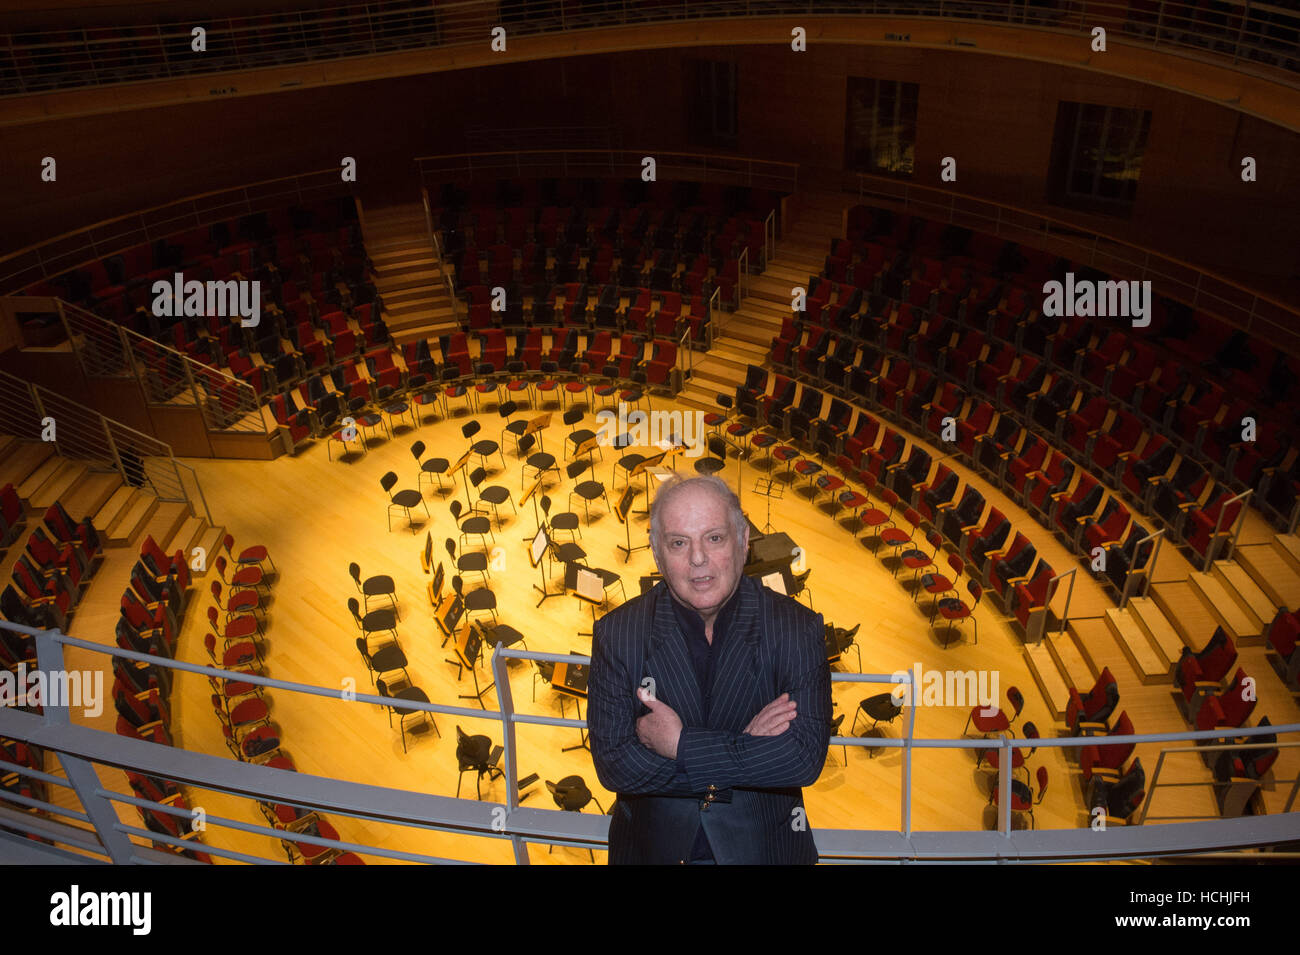 Berlin, Germany. 08th Dec, 2016. The conductor Daniel Barenboim in the Barenboim-Said Academy's Pierre Boulez - Stock Image